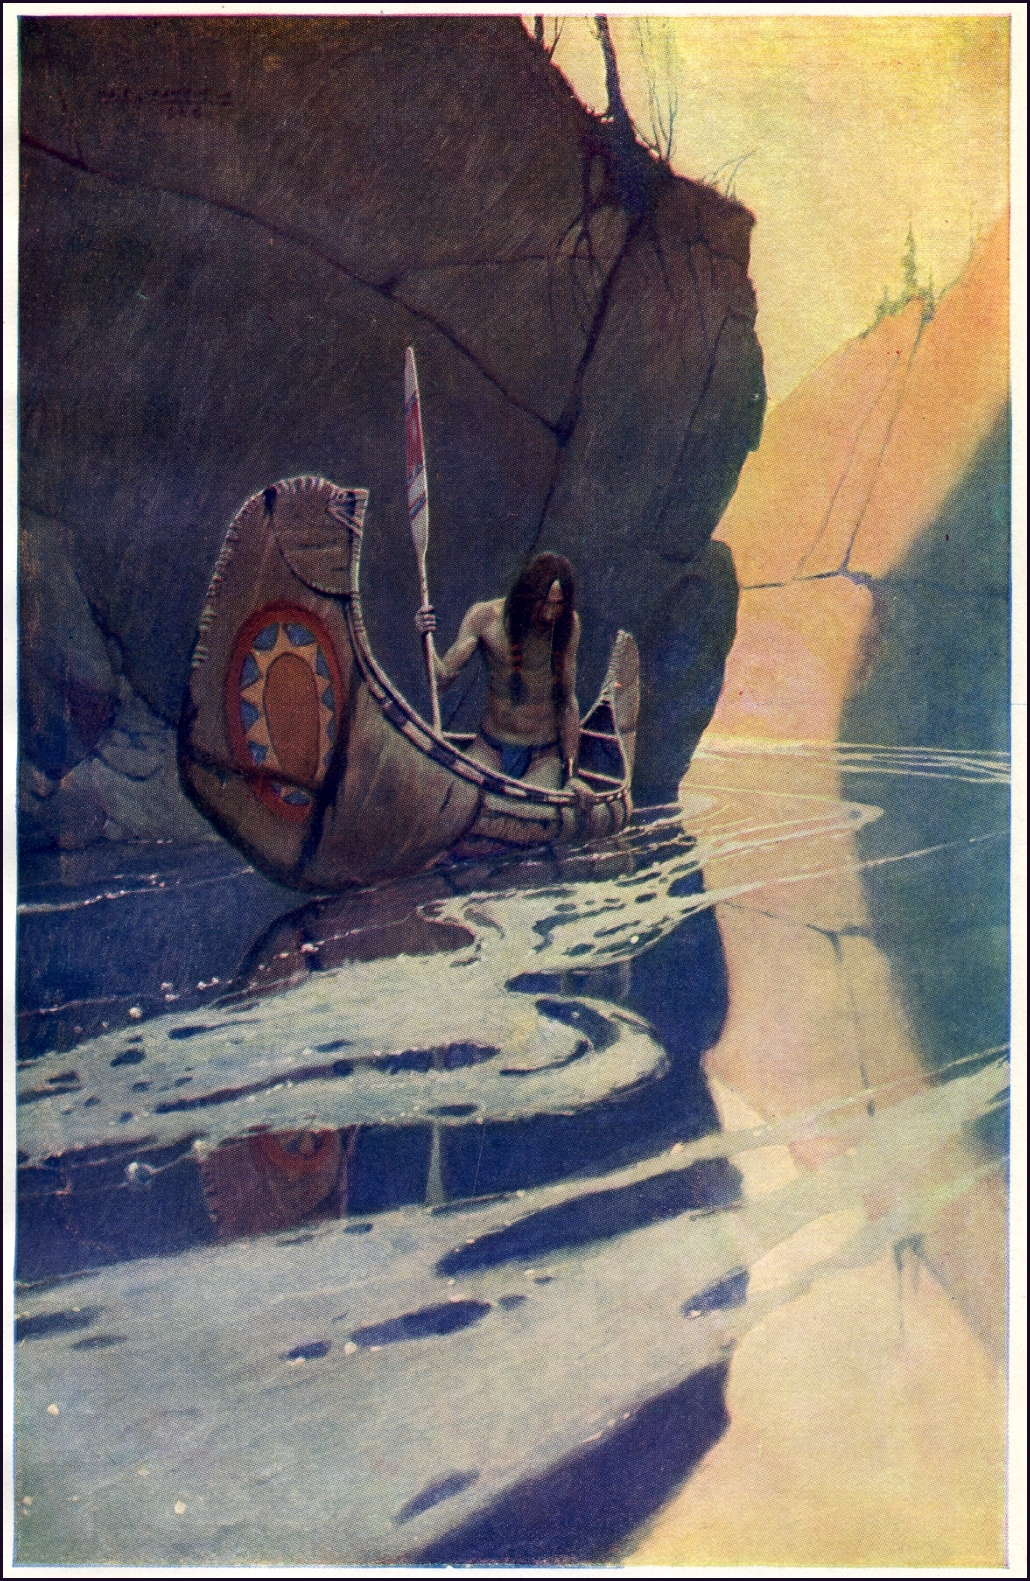 NC Wyeth indian